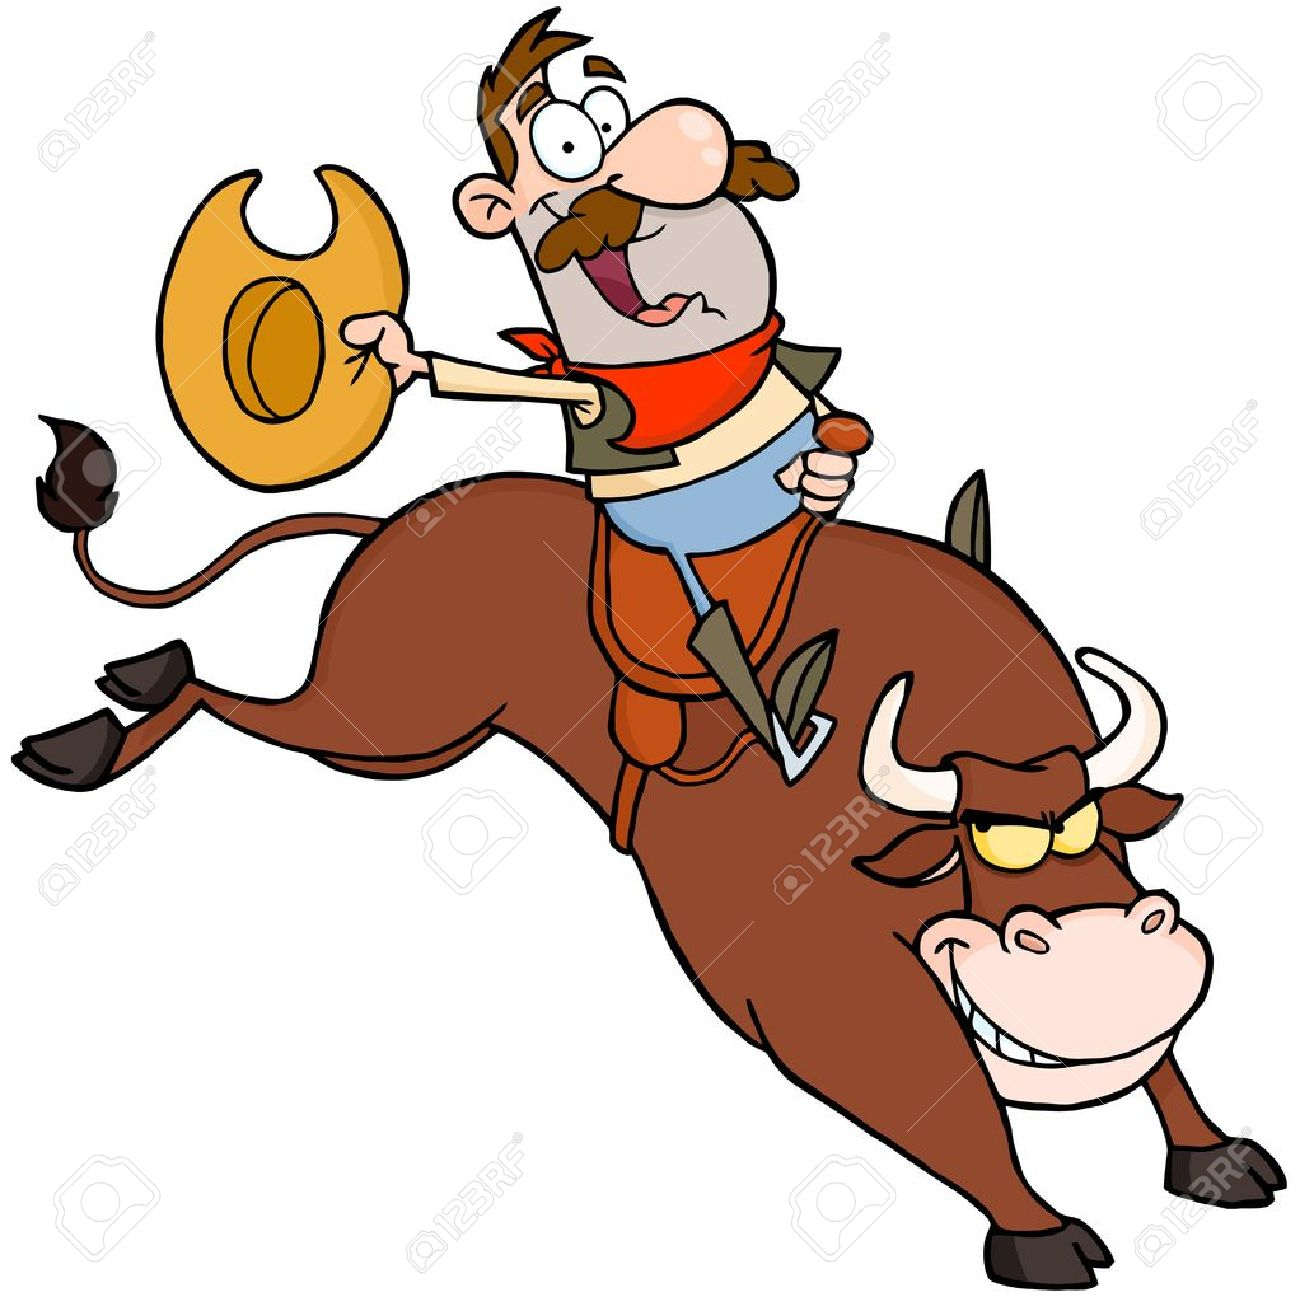 1300x1297 Cowboy Clipart Bull Riding Free Collection Download And Share